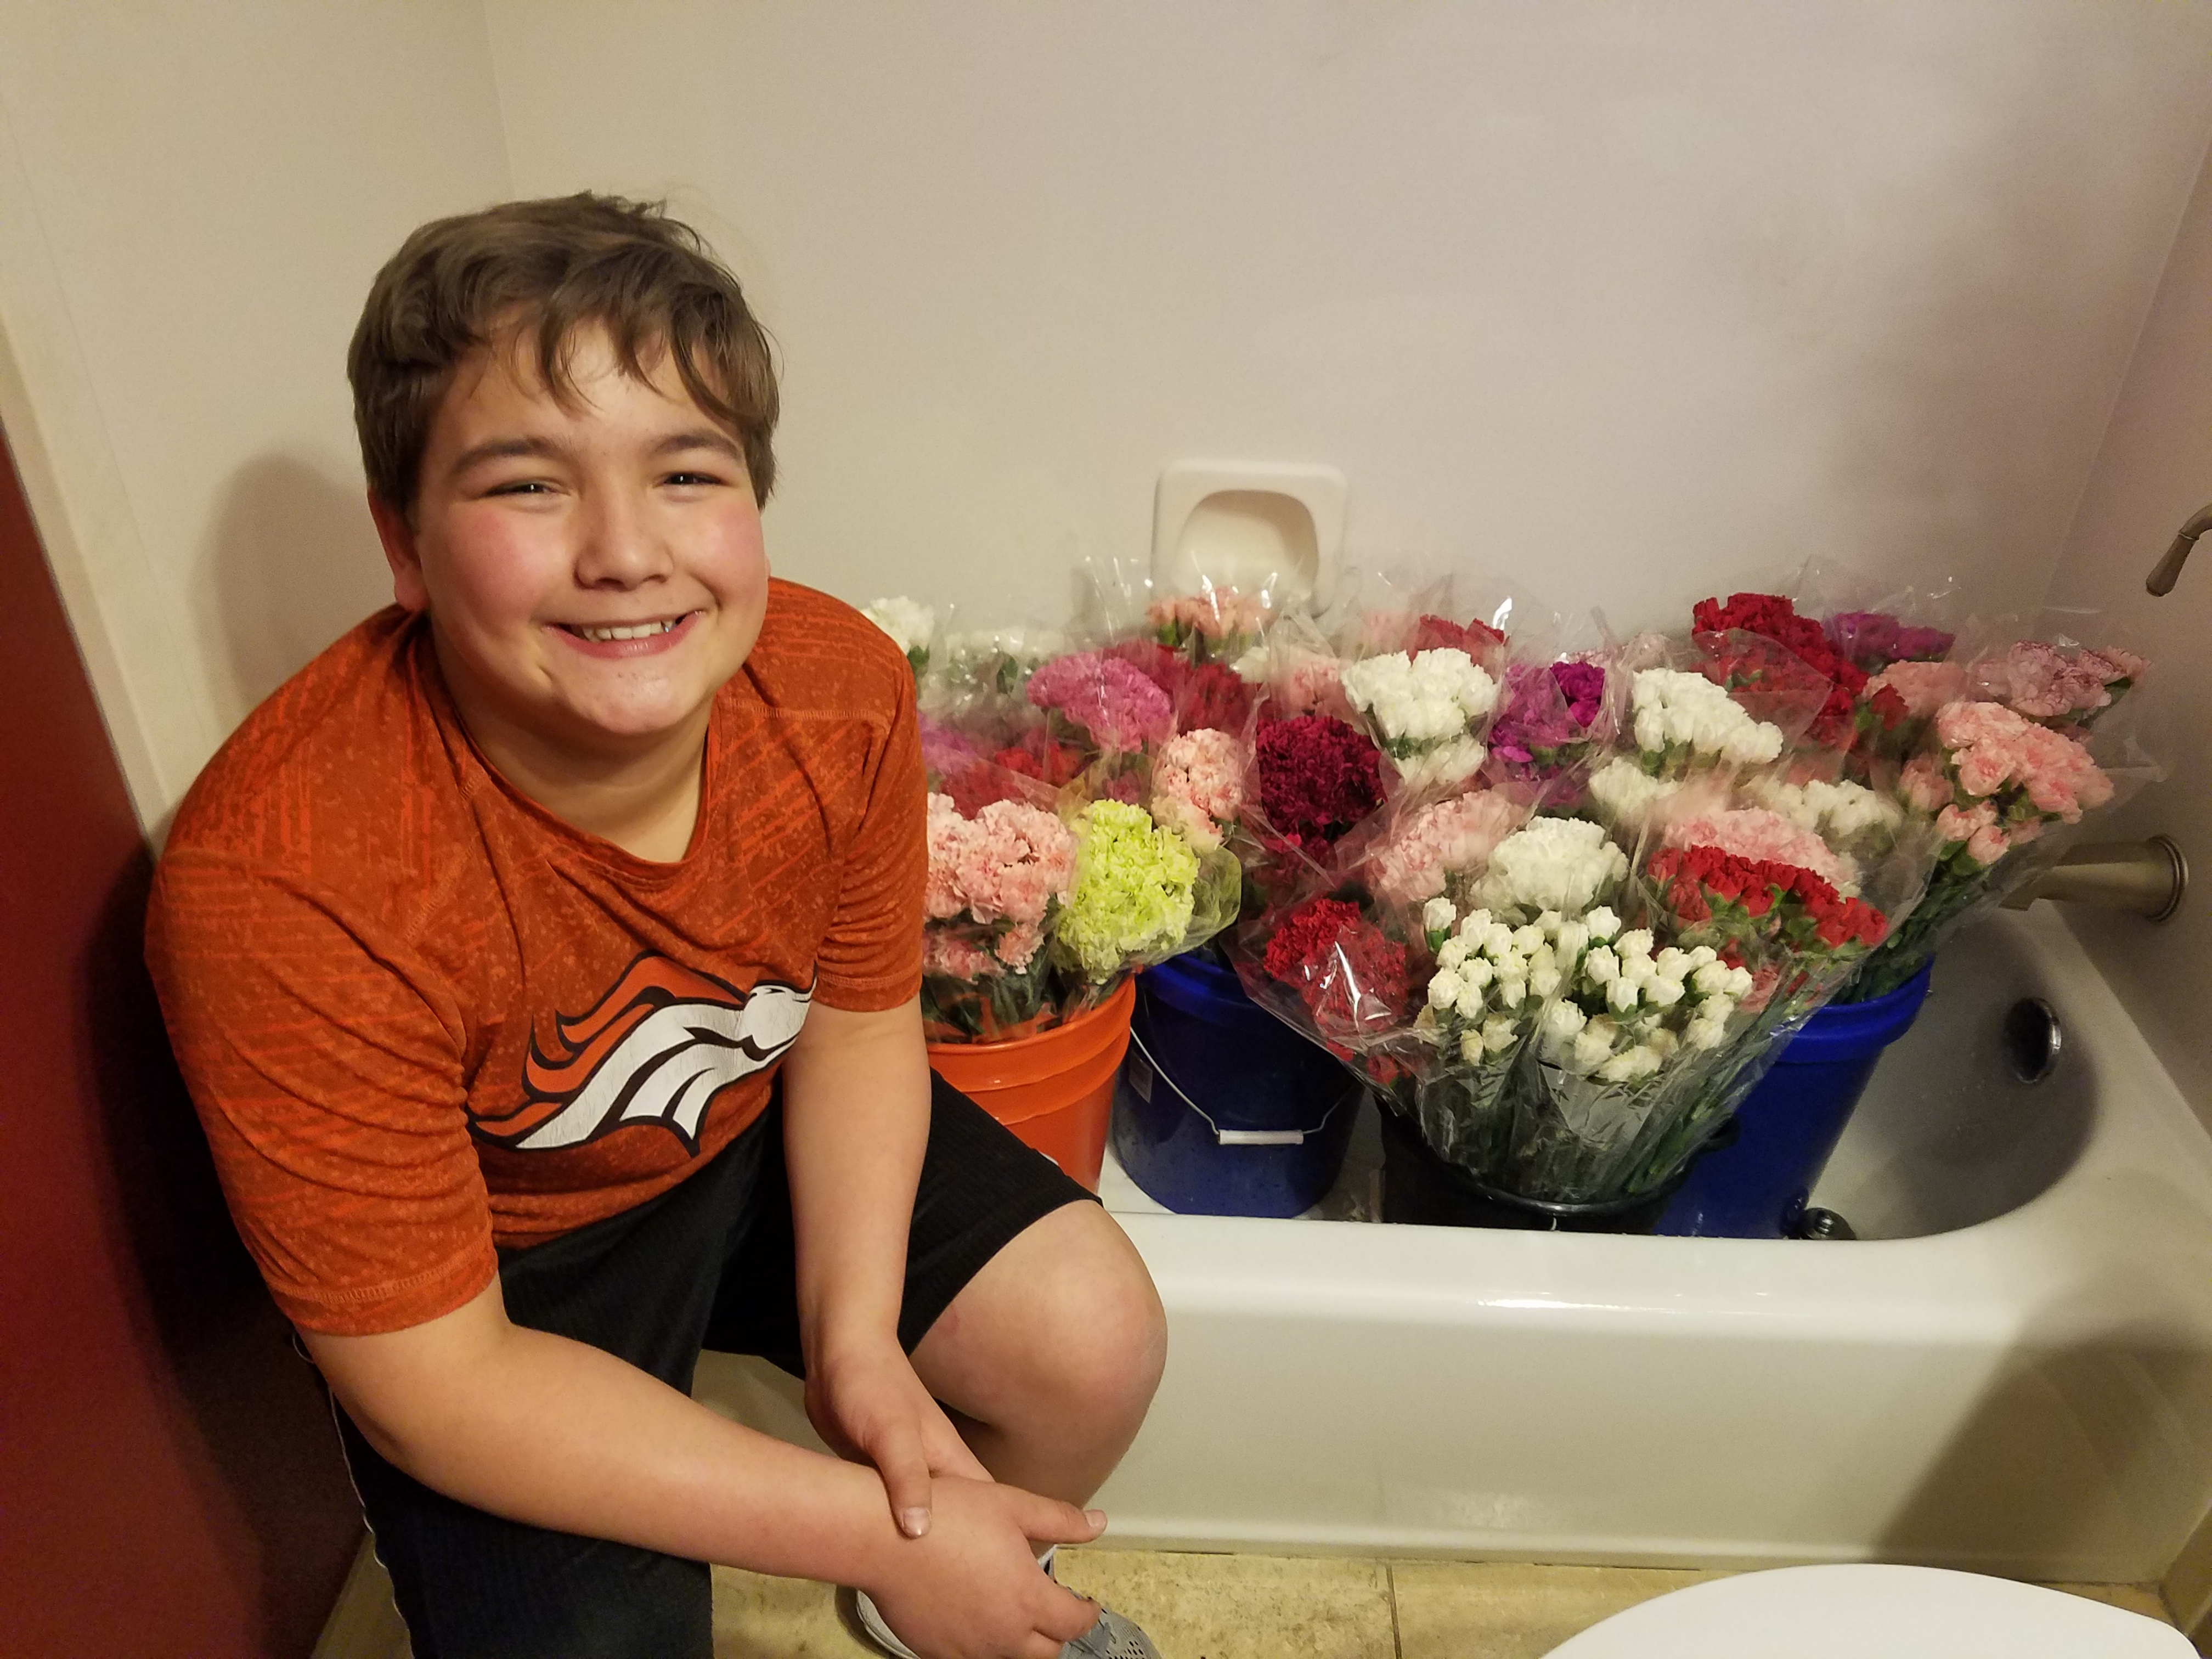 Meet the inspiring eighth-grader who bought 947 carnations for 947 young ladies